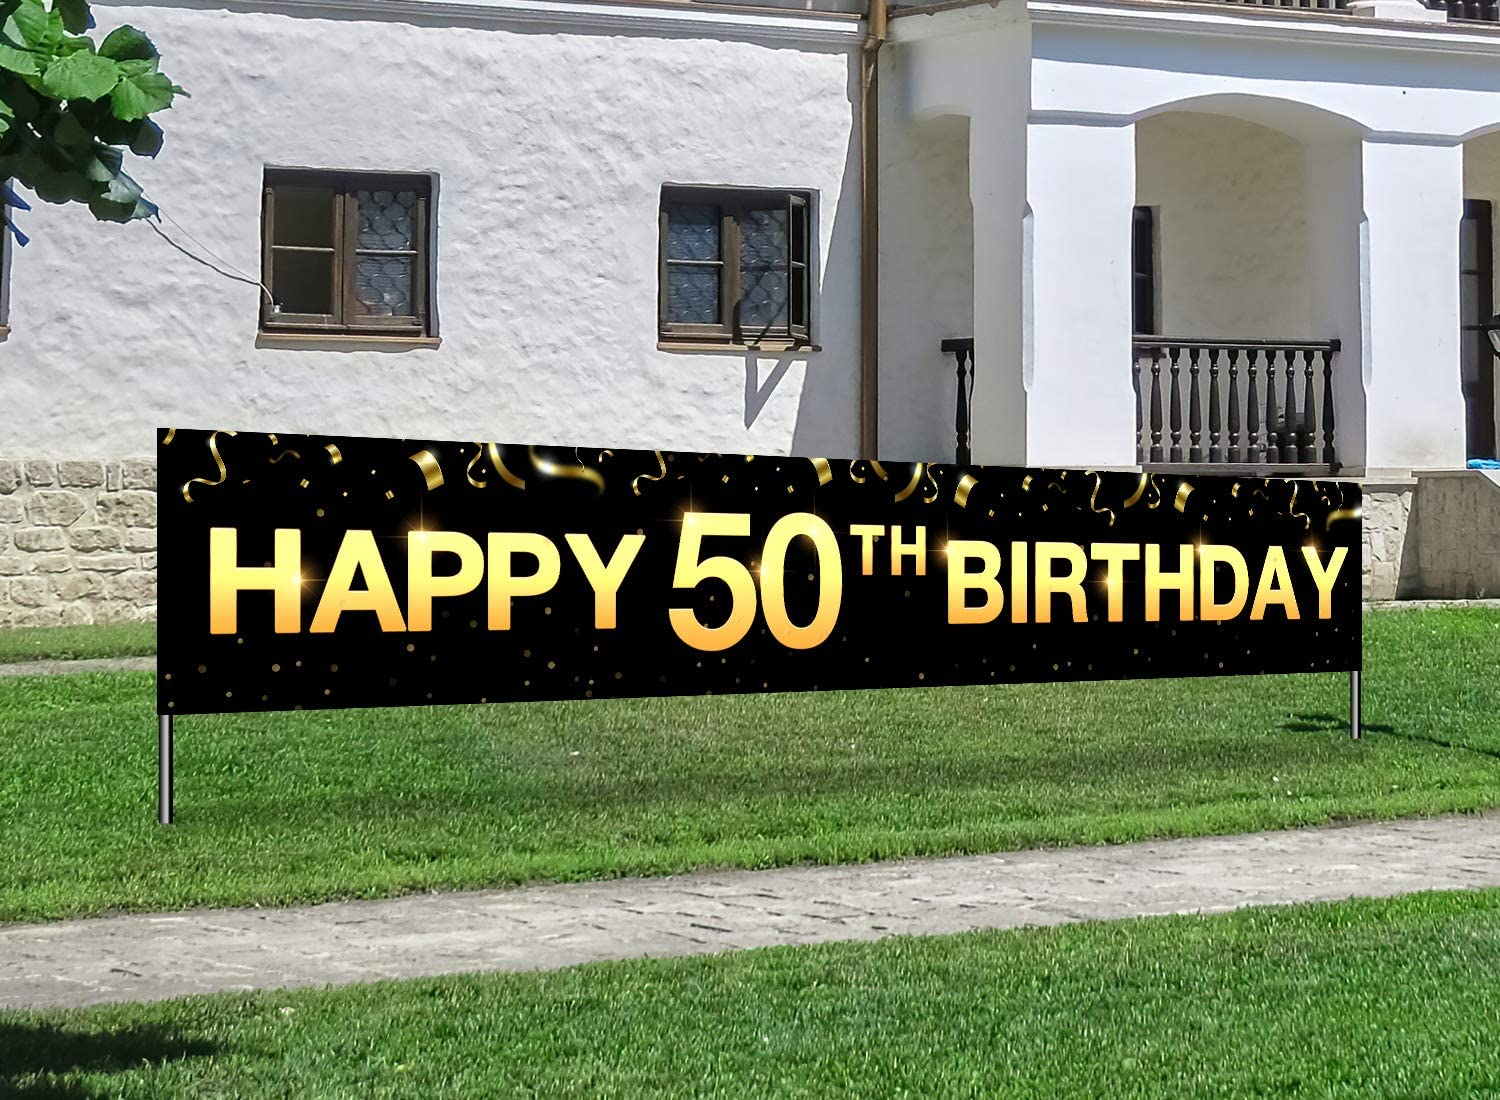 Greatingreat Large Cheers to 50 Years Banner, Black Gold 50 Anniversary Party Sign, 50th Happy Birthday Banner(9.8feet X 1.6feet)